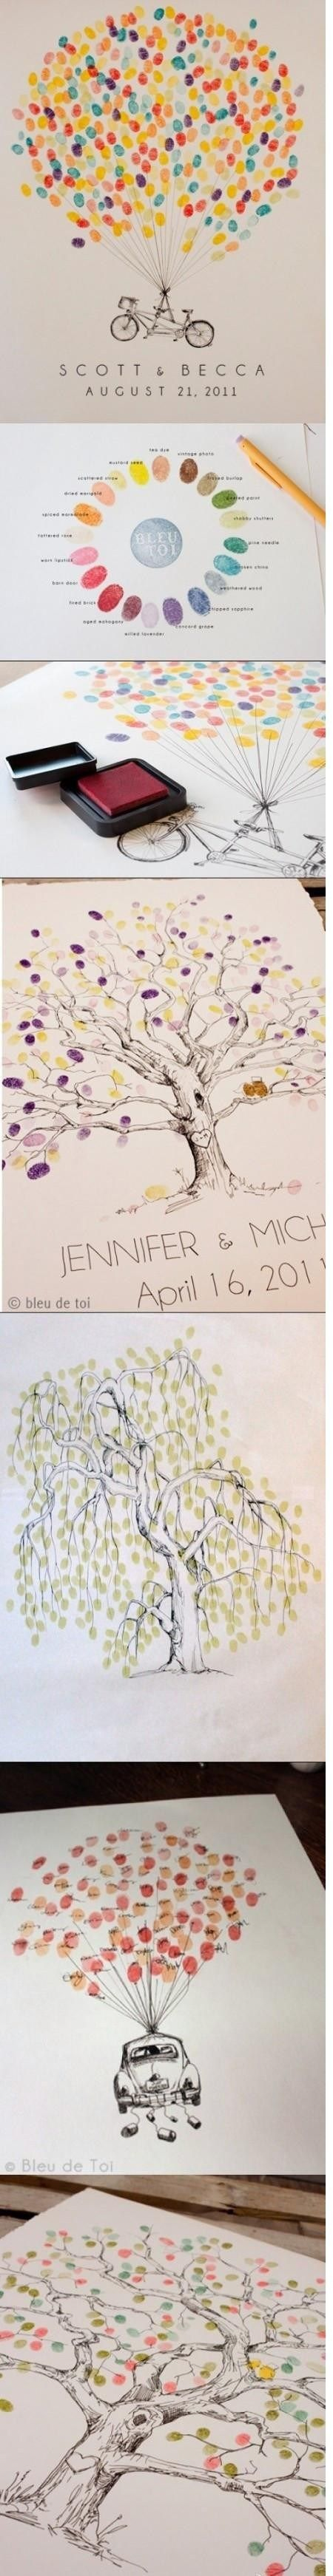 Wish we had done this for our wedding! great idea for a teacher gift, too :) fingerprint idea - thumbprint for wedding or family reunion